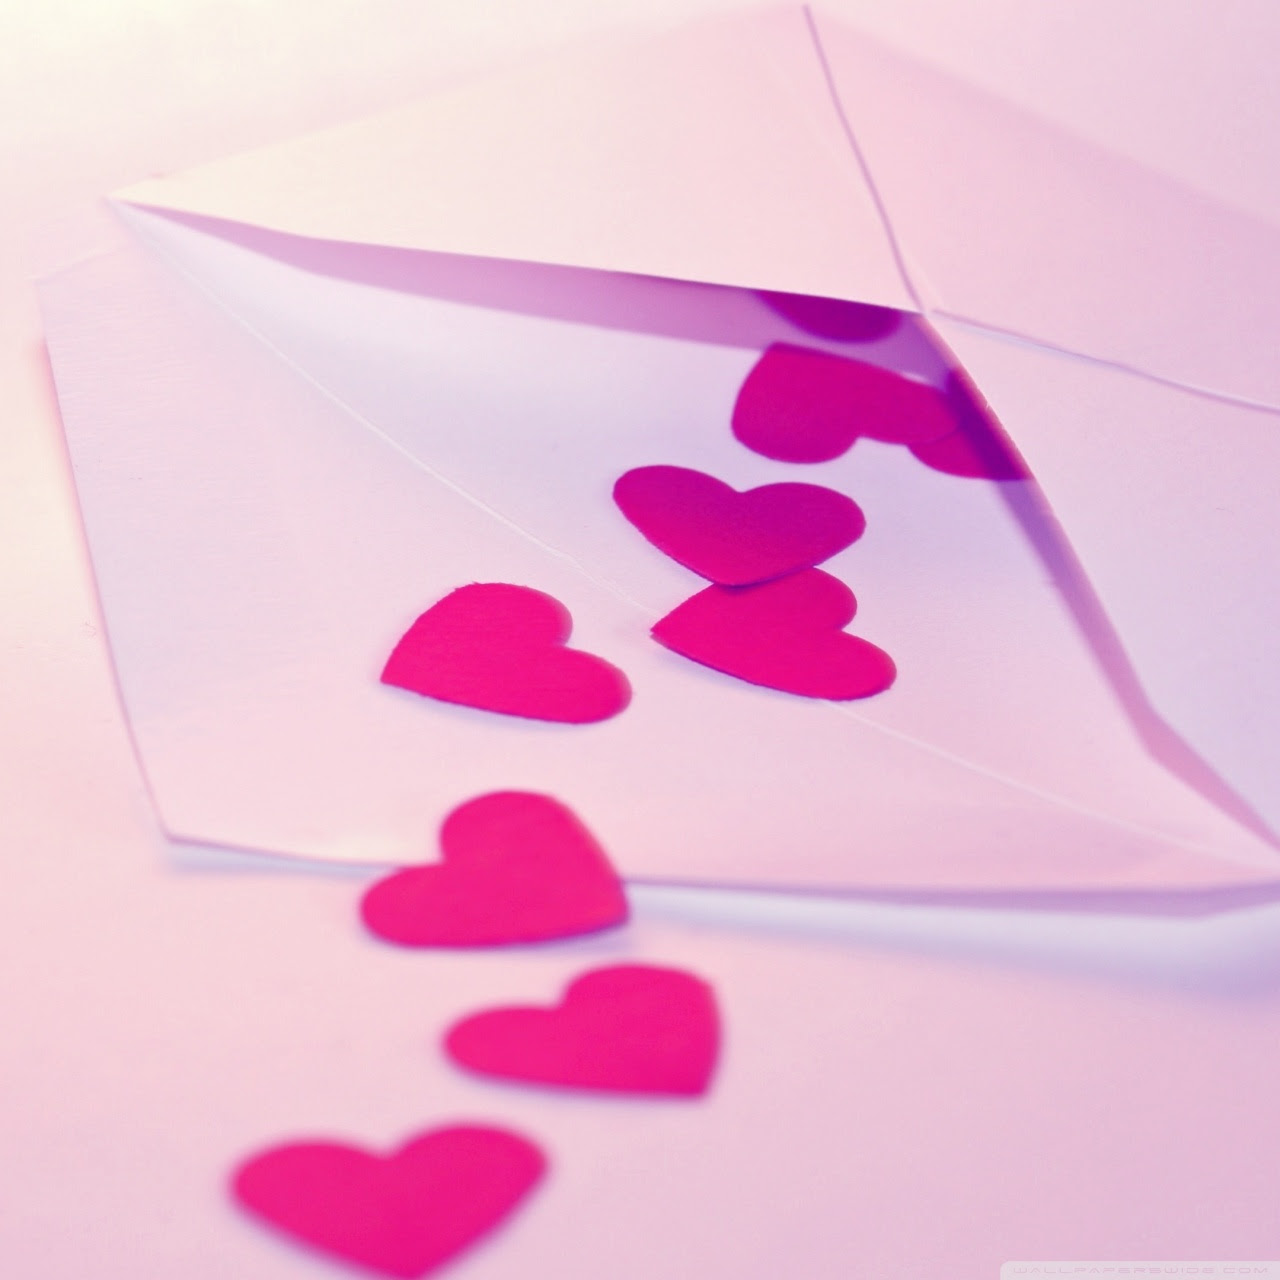 Letter I Love You Hd Wallpaper Download Wallpapers Direct